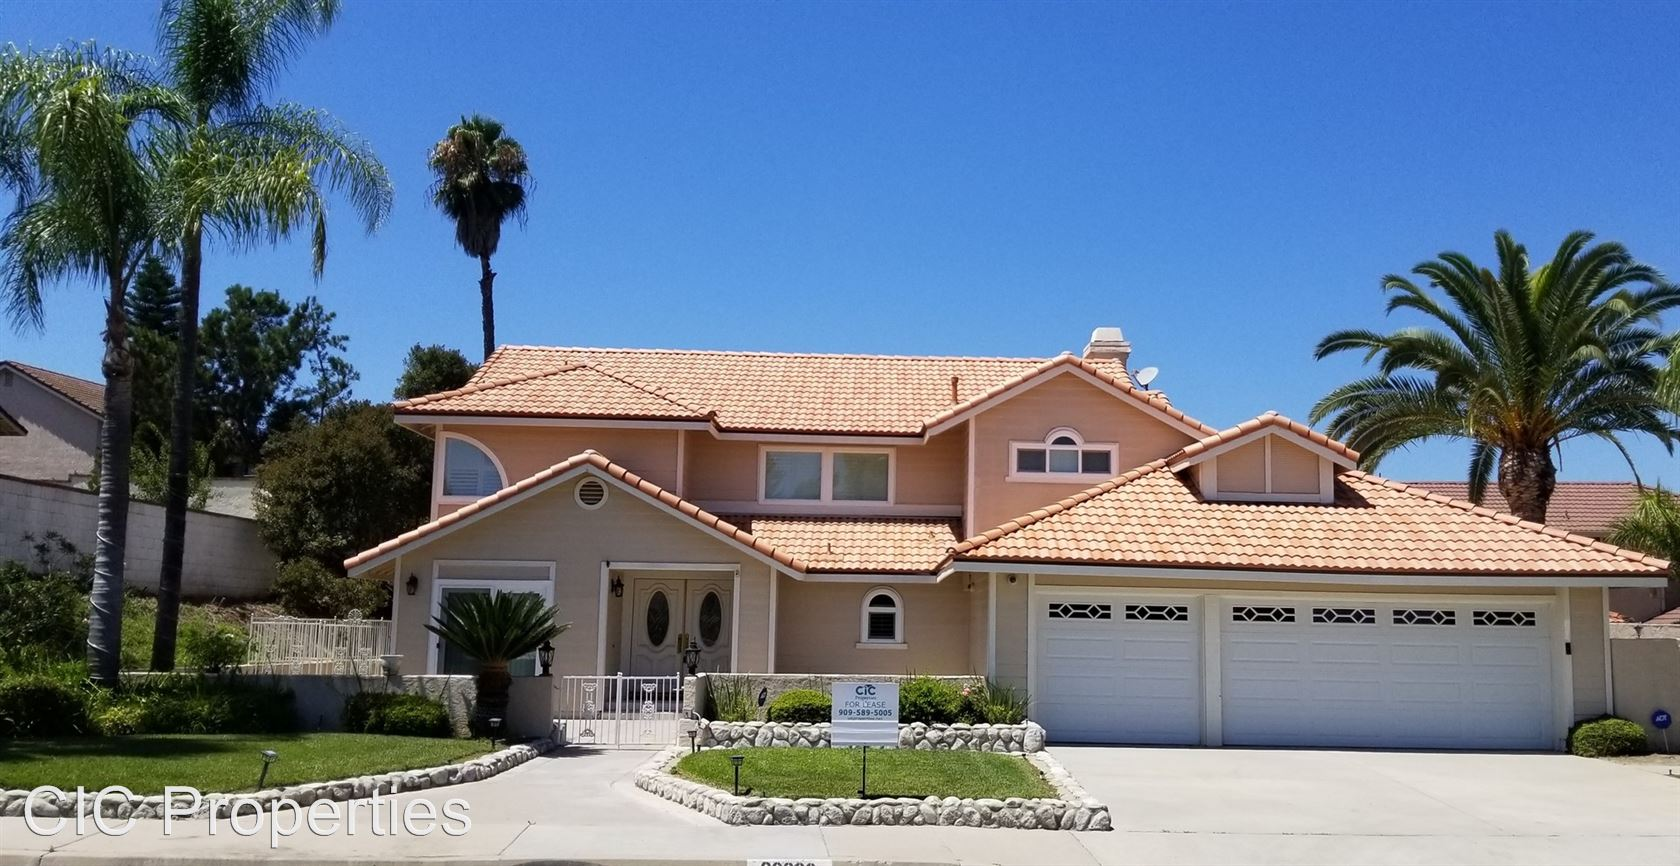 20 Best Apartments In Rowland Heights, CA (with pictures)!